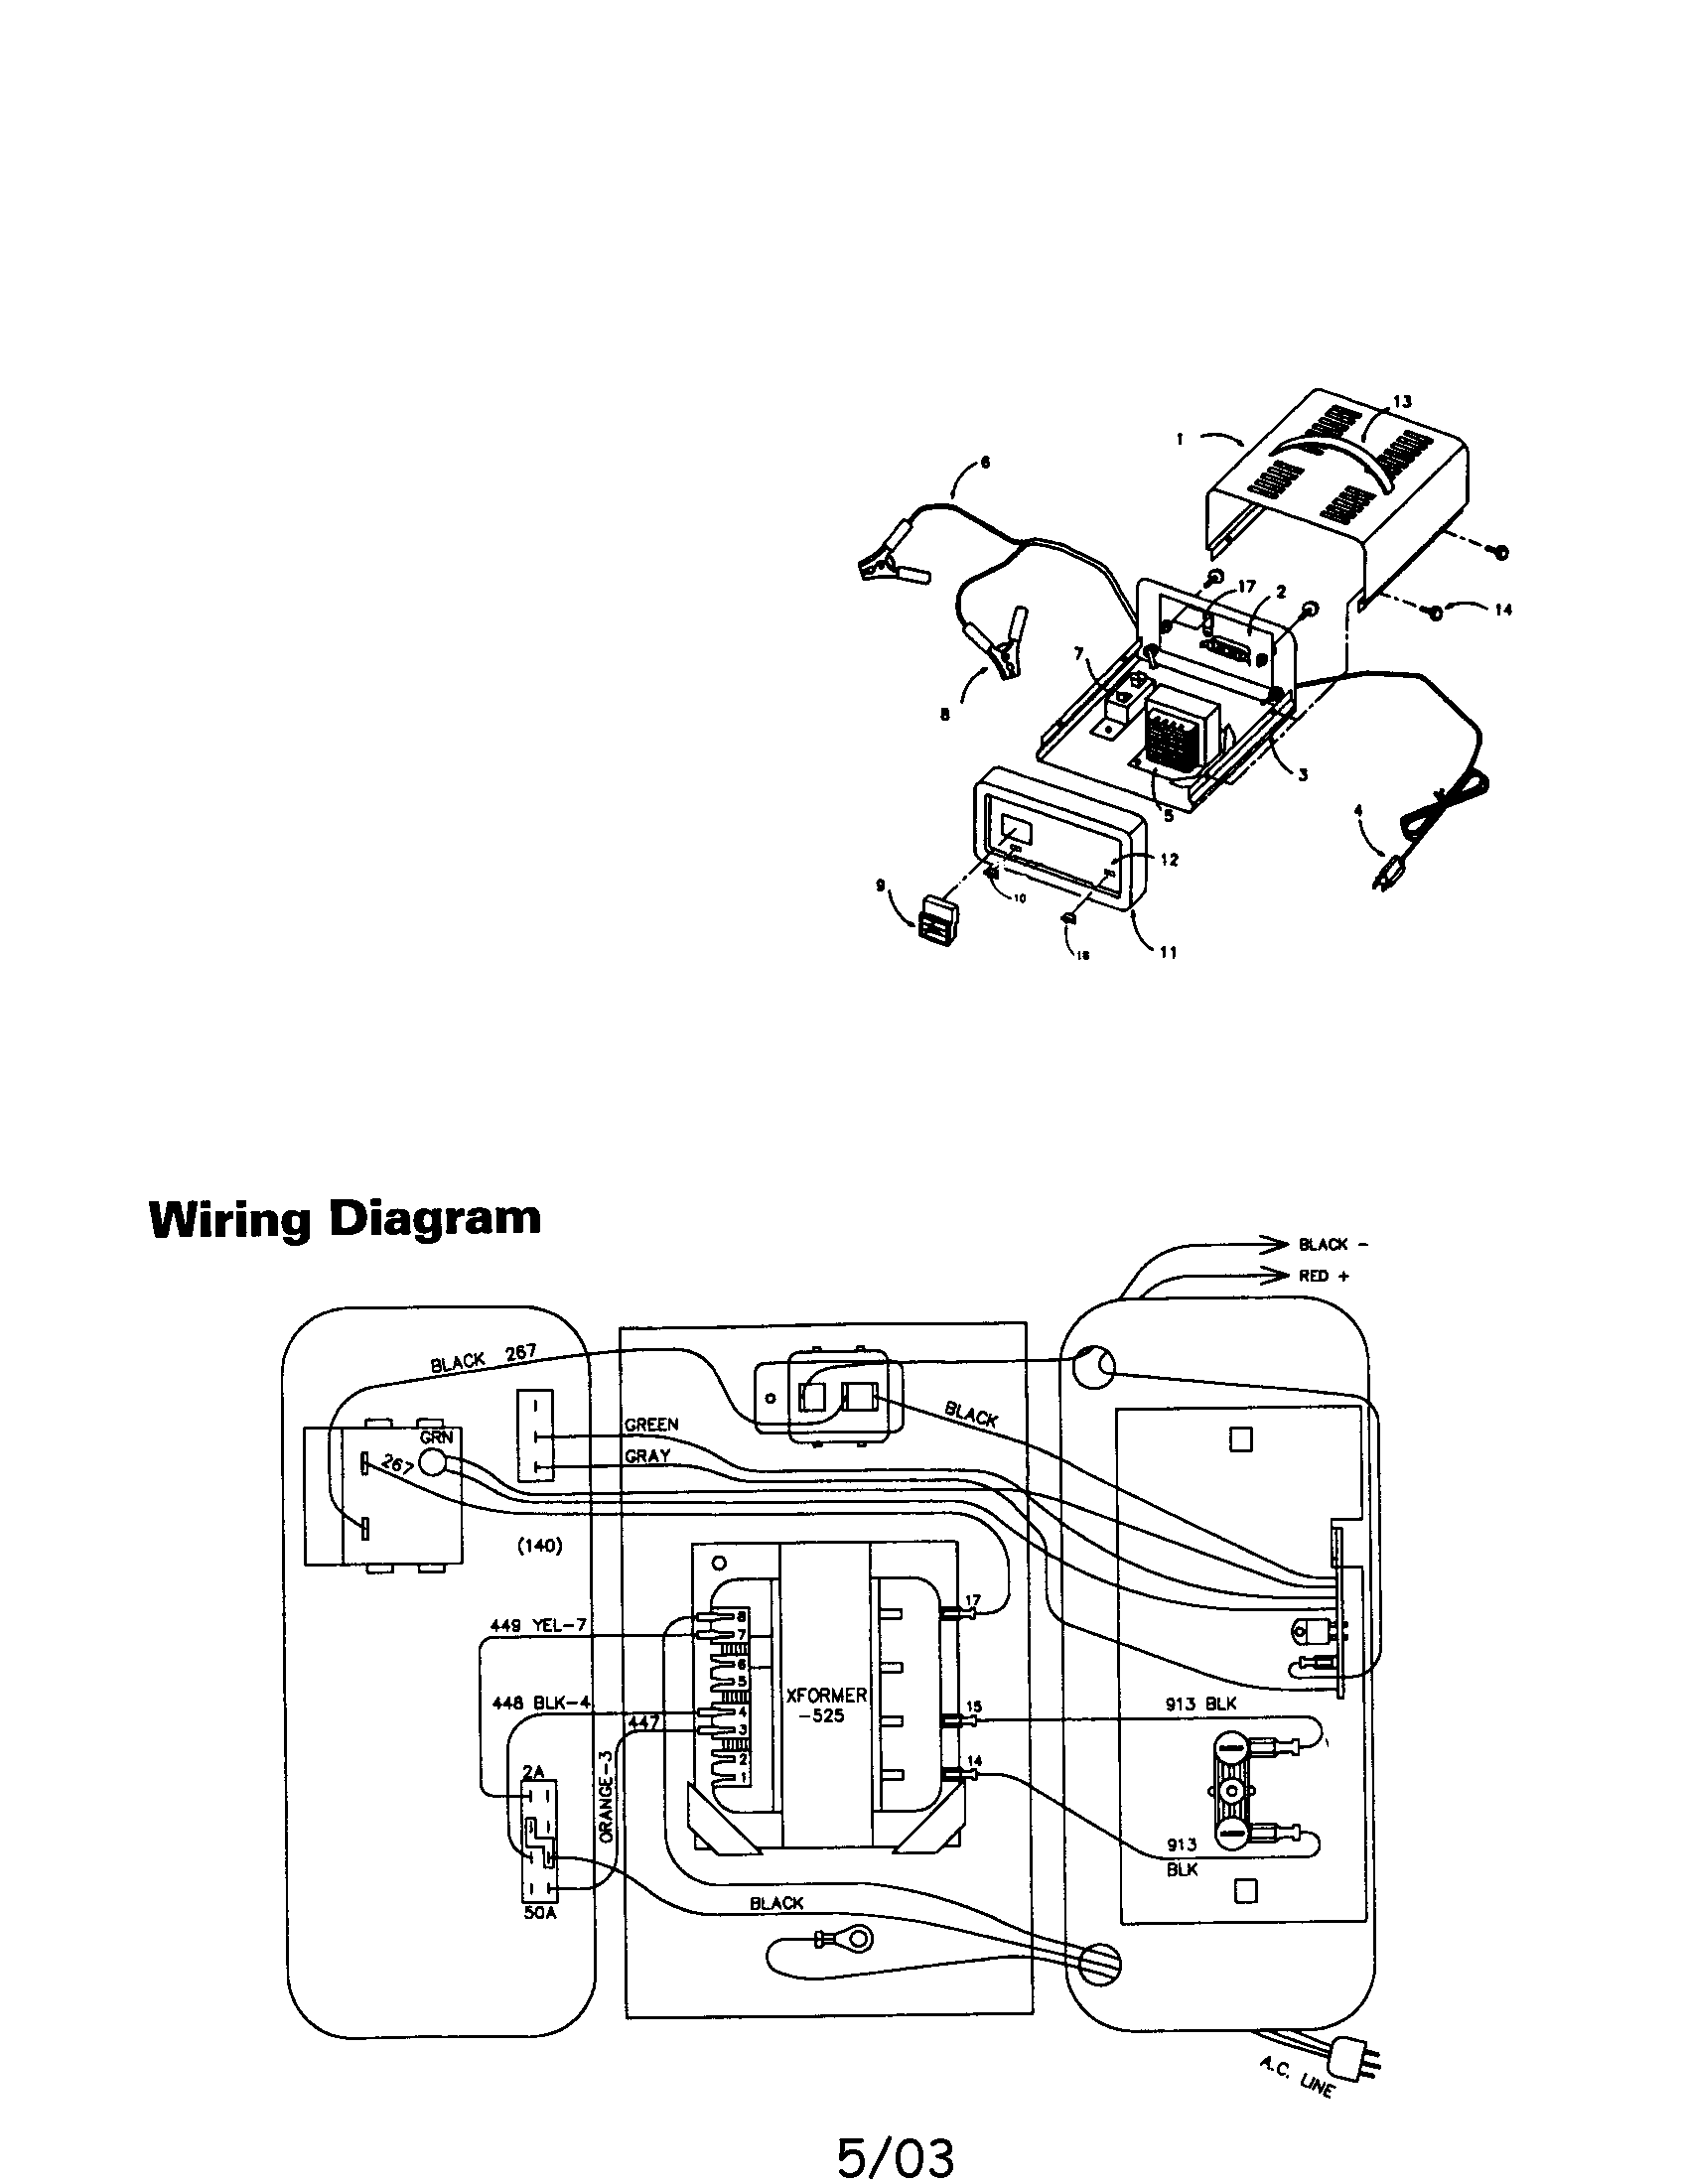 Hard Battery Charger Model 28 Wiring Diagram